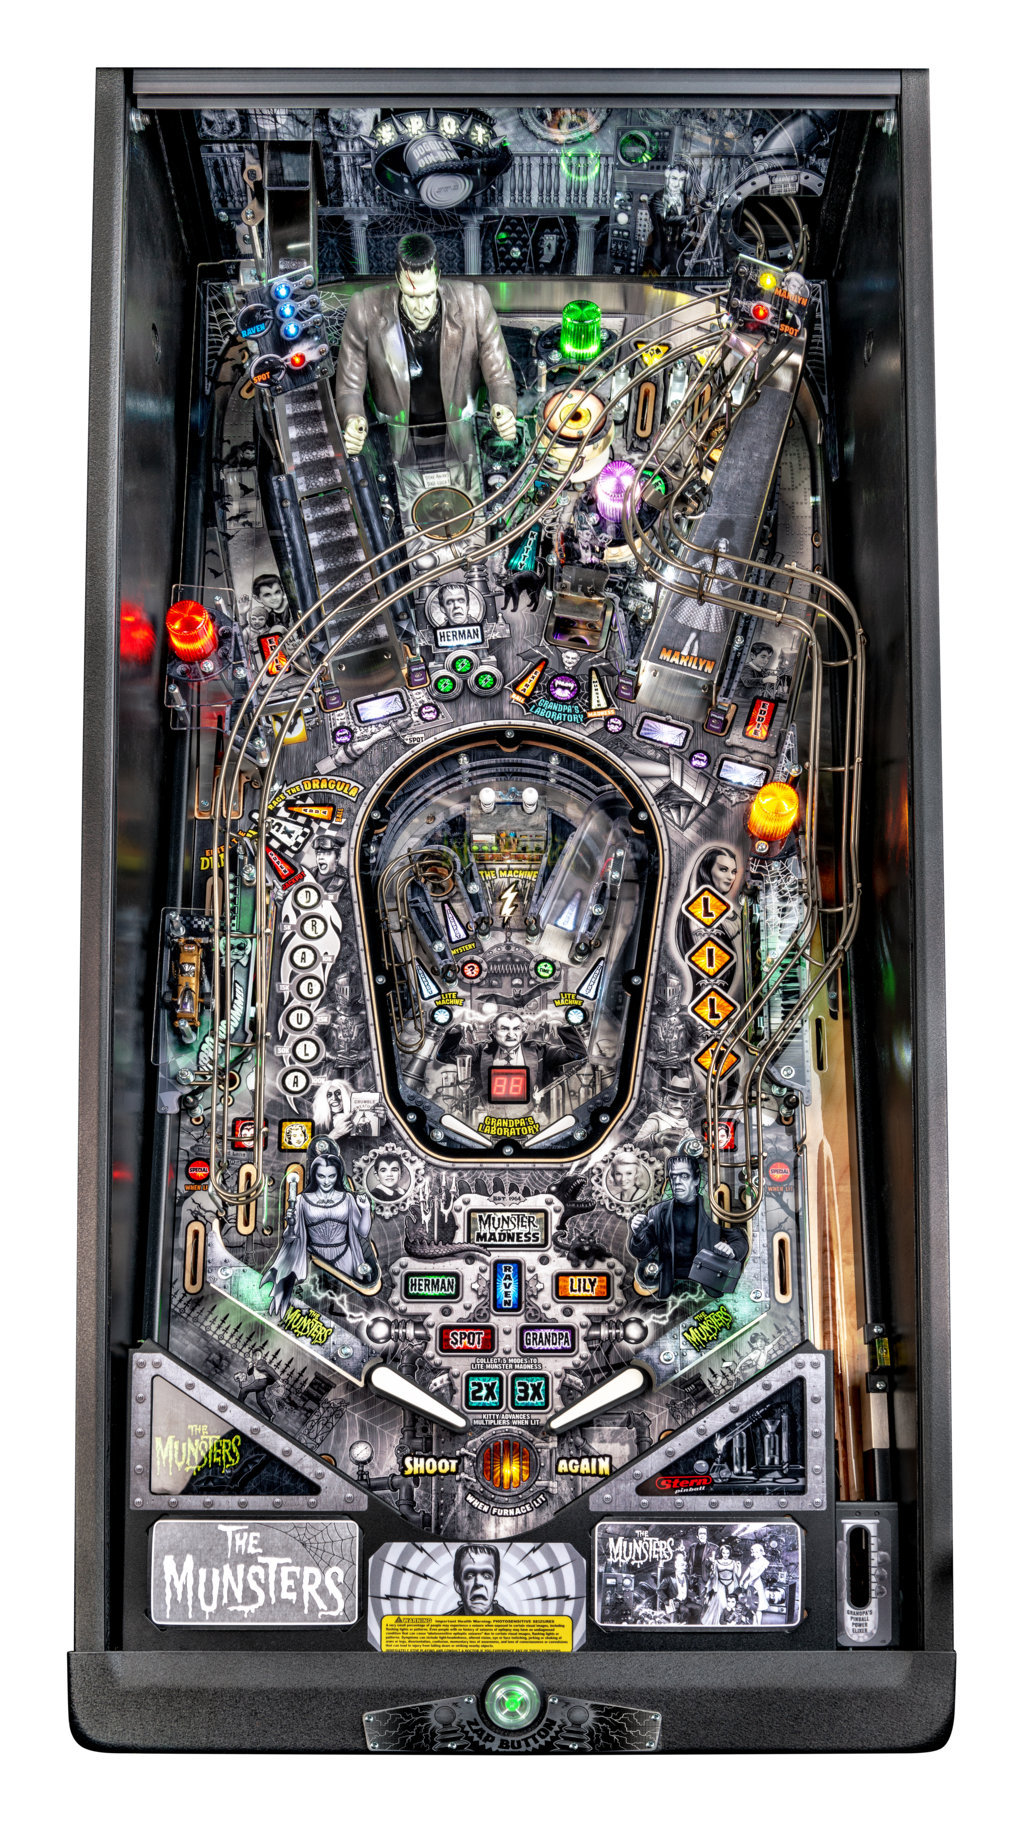 Munsters Premium Playfield mini